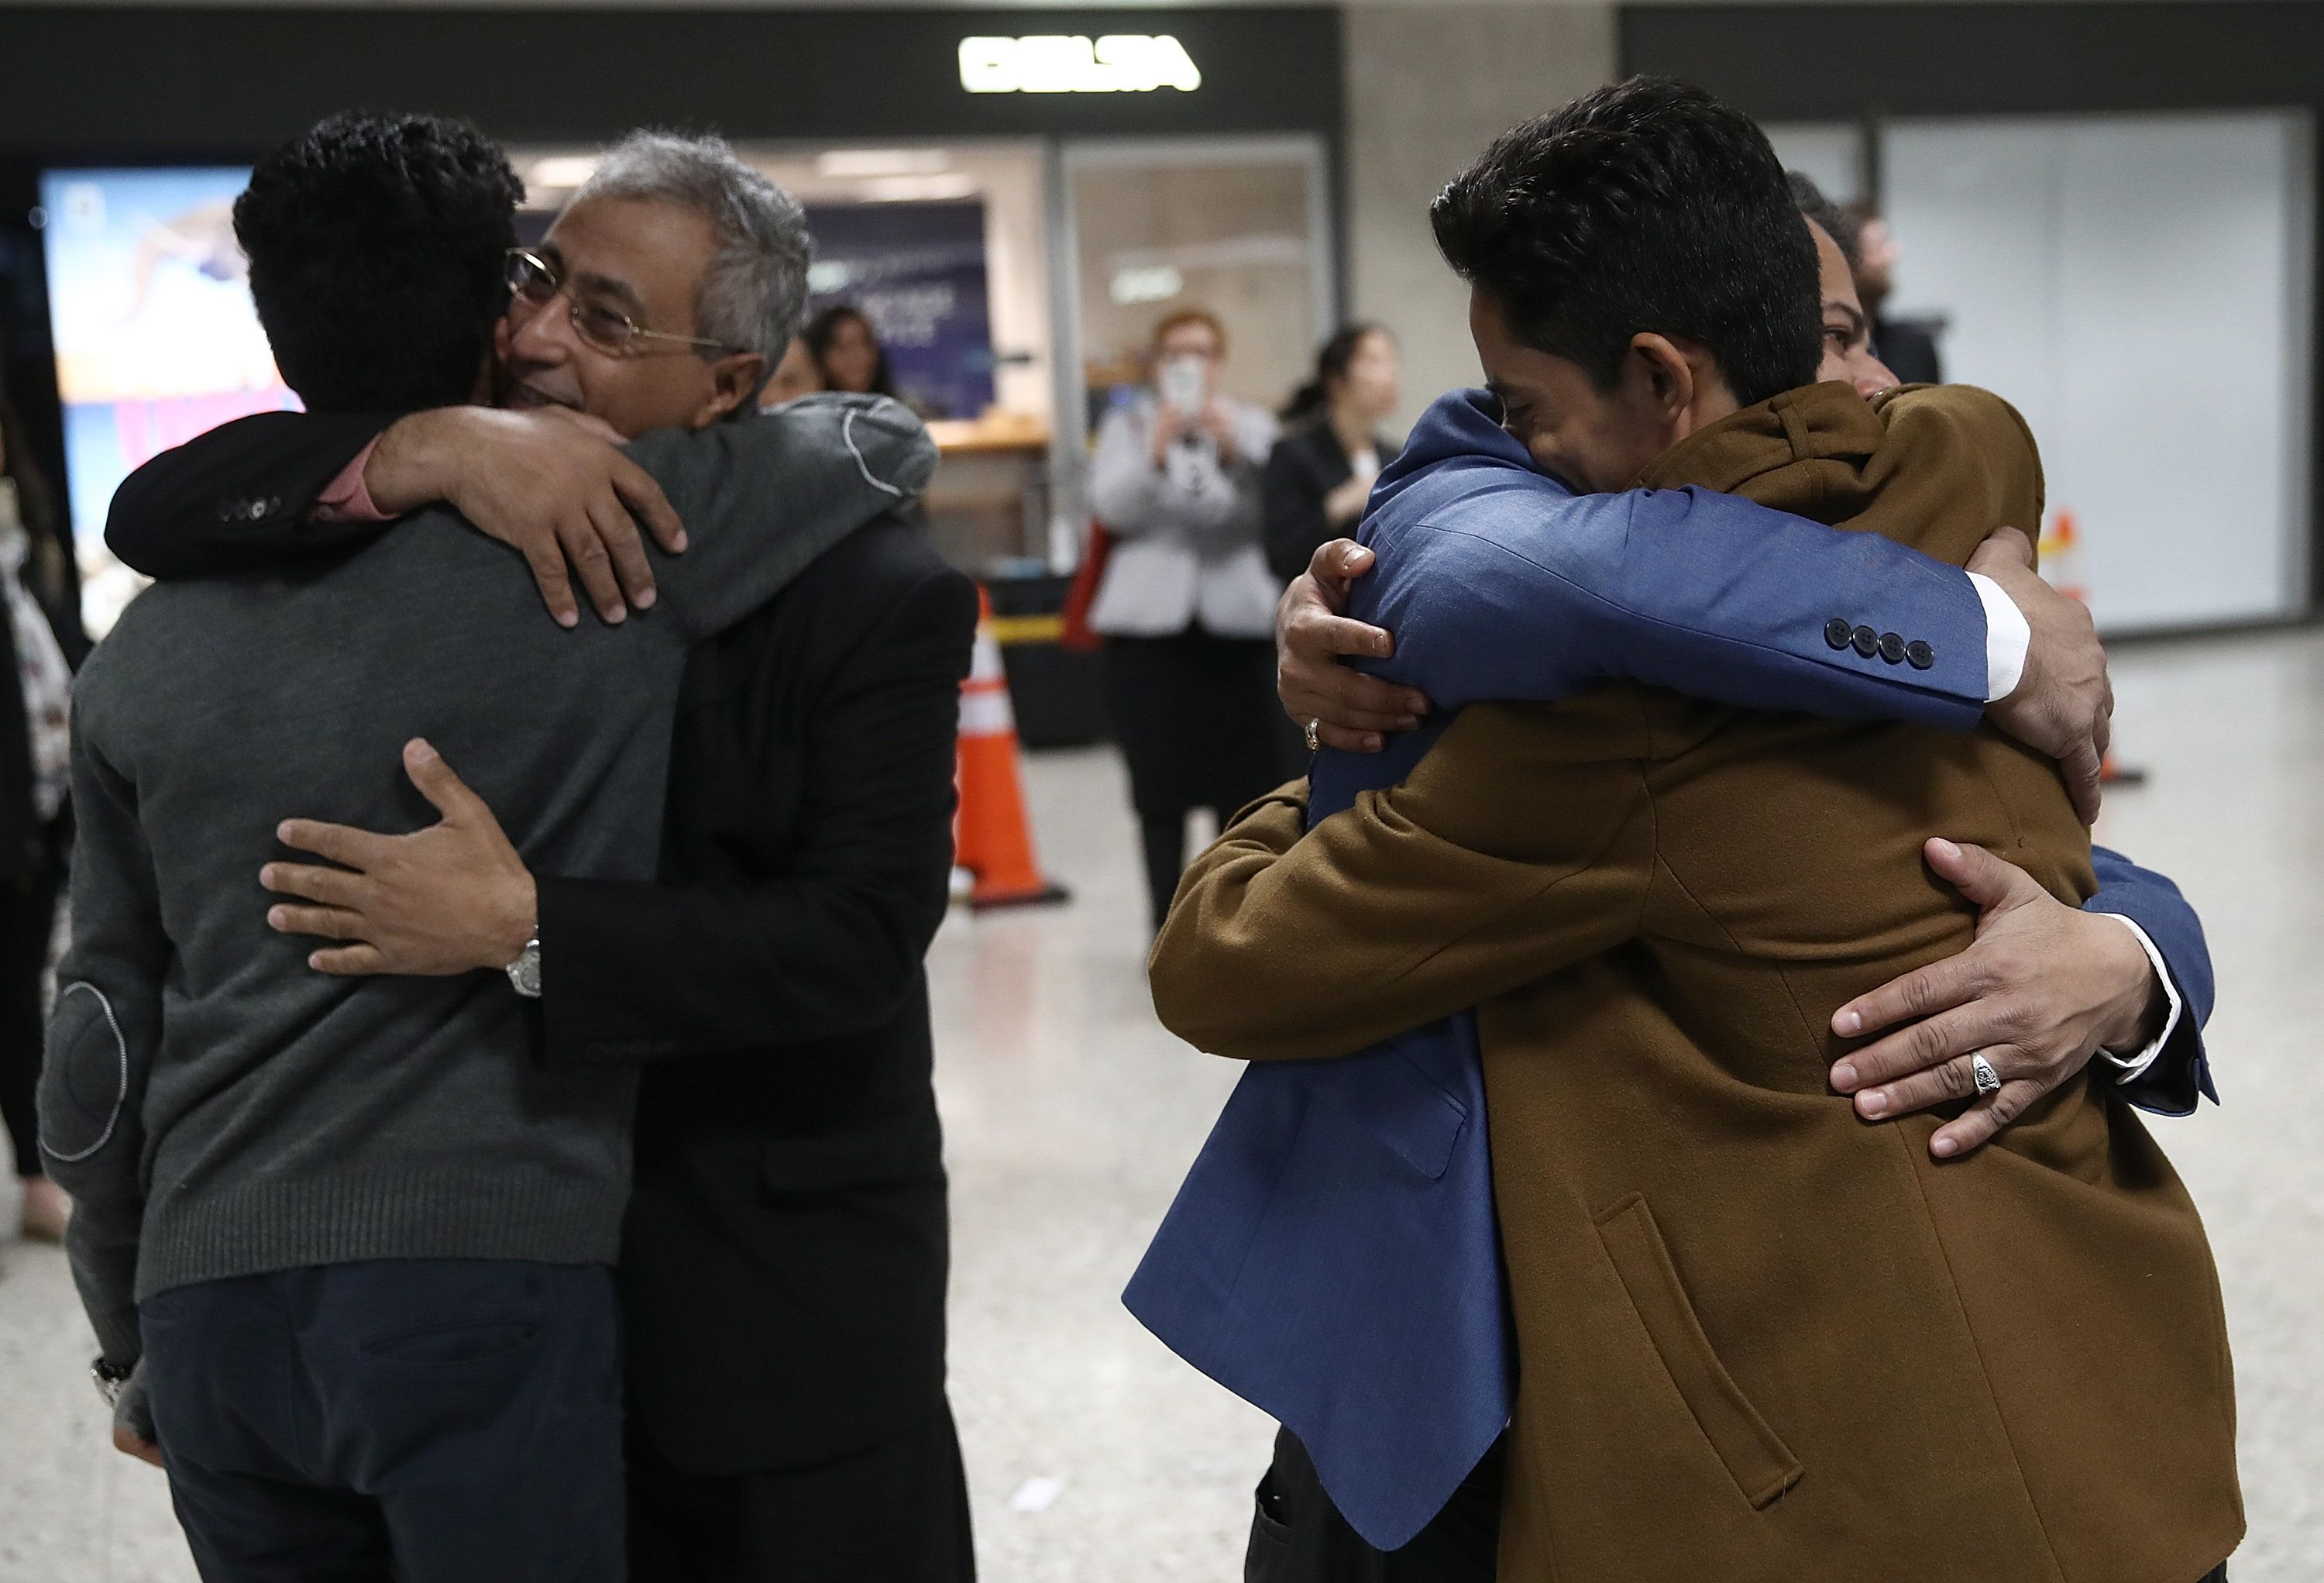 Brothers Ammar and Tareq Aqel Mohammed Aziz hug their father and uncle after arriving in Dulles International Airport.